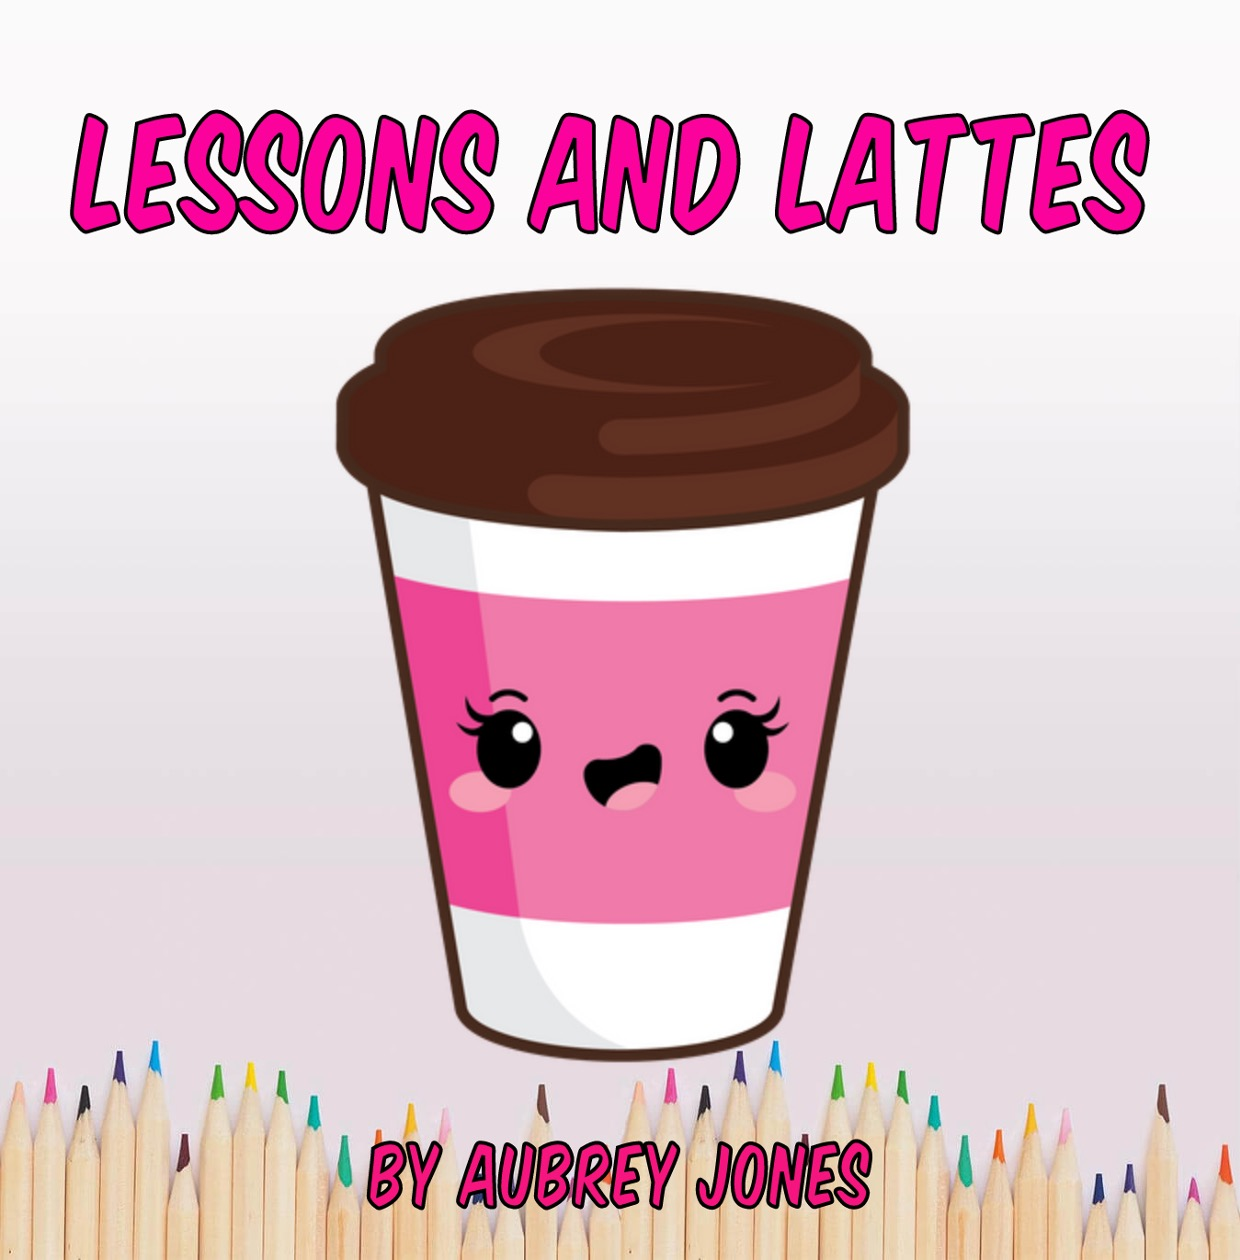 Lessons & Lattes by Aubrey Jones